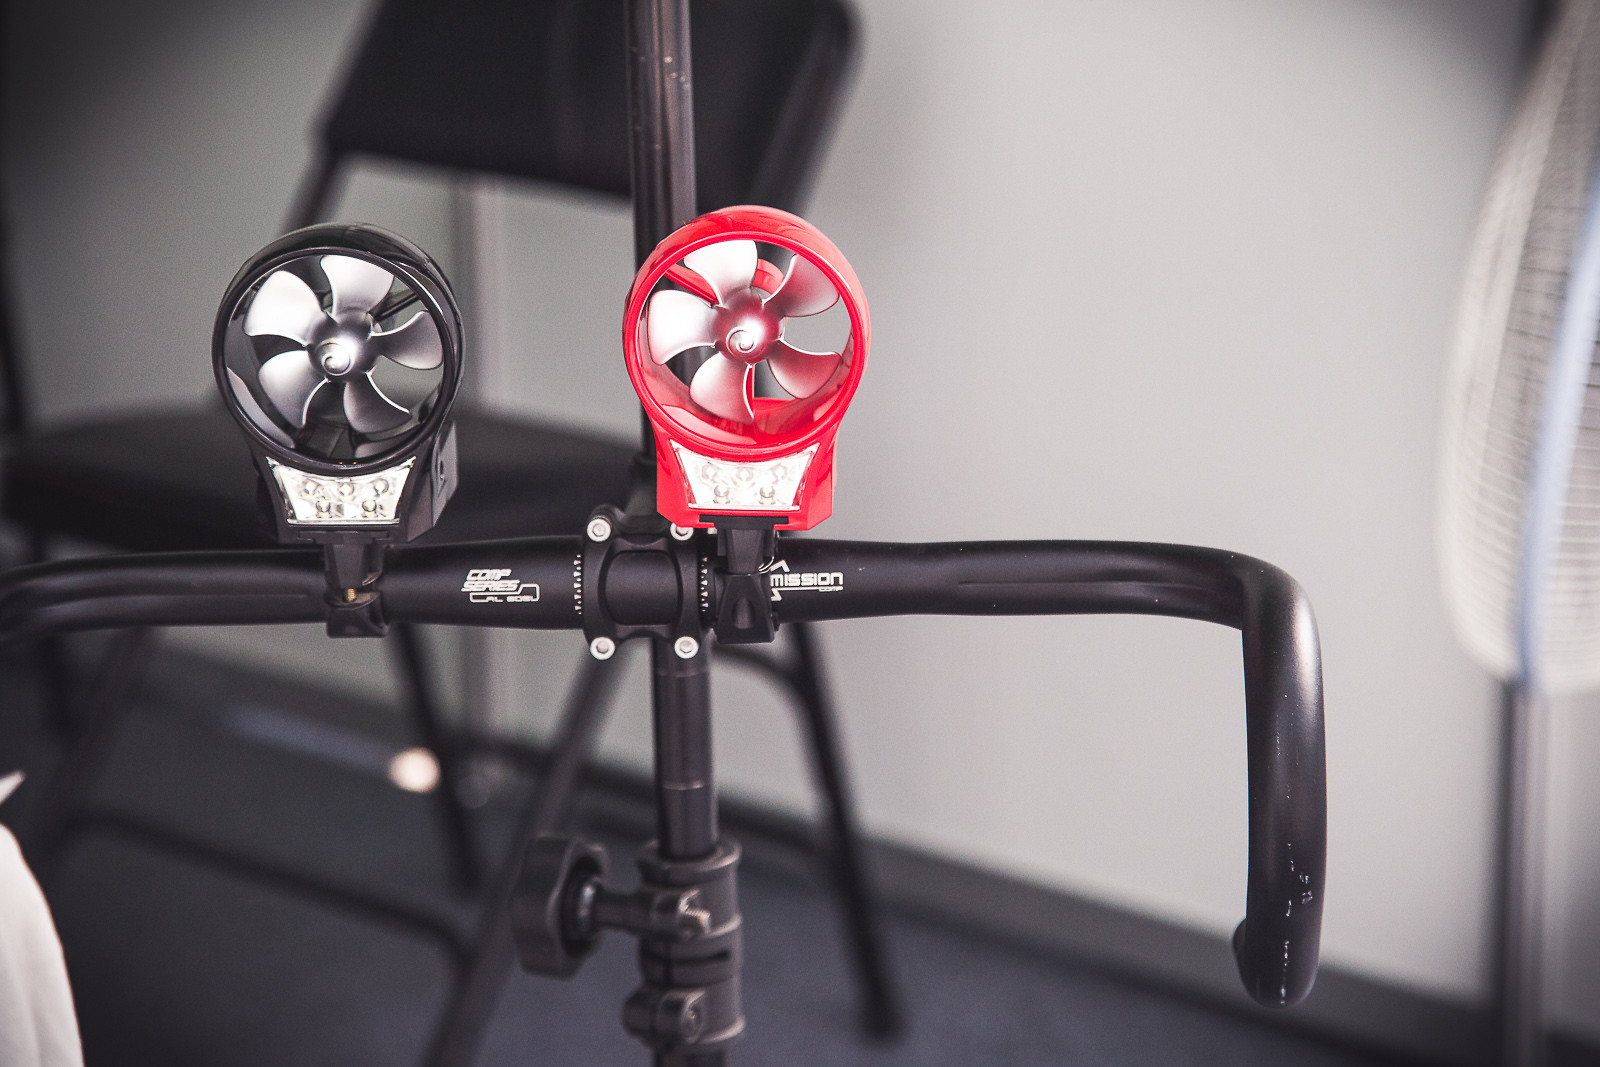 Go Green with Fan-powered LEDs - LTrumpore - Mountain Biking Pictures - Vital MTB